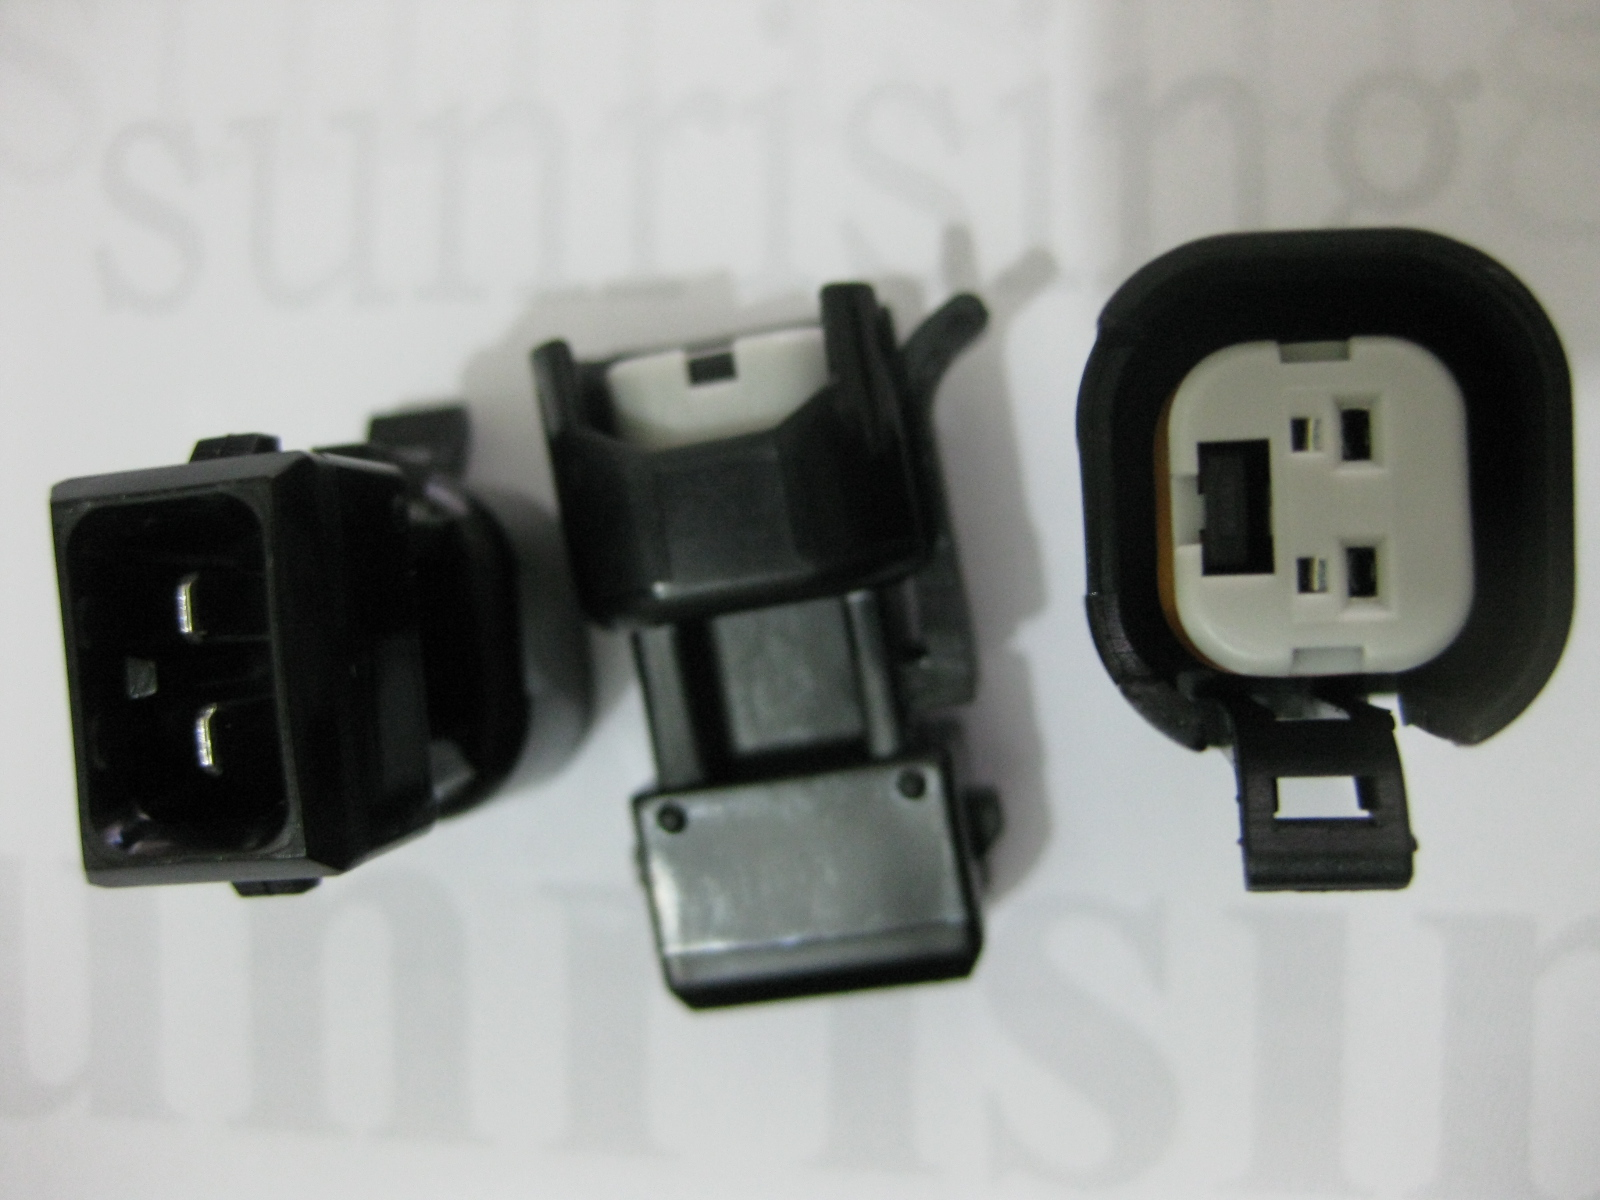 - EV1 Male to EV6 Female no hastle adapters